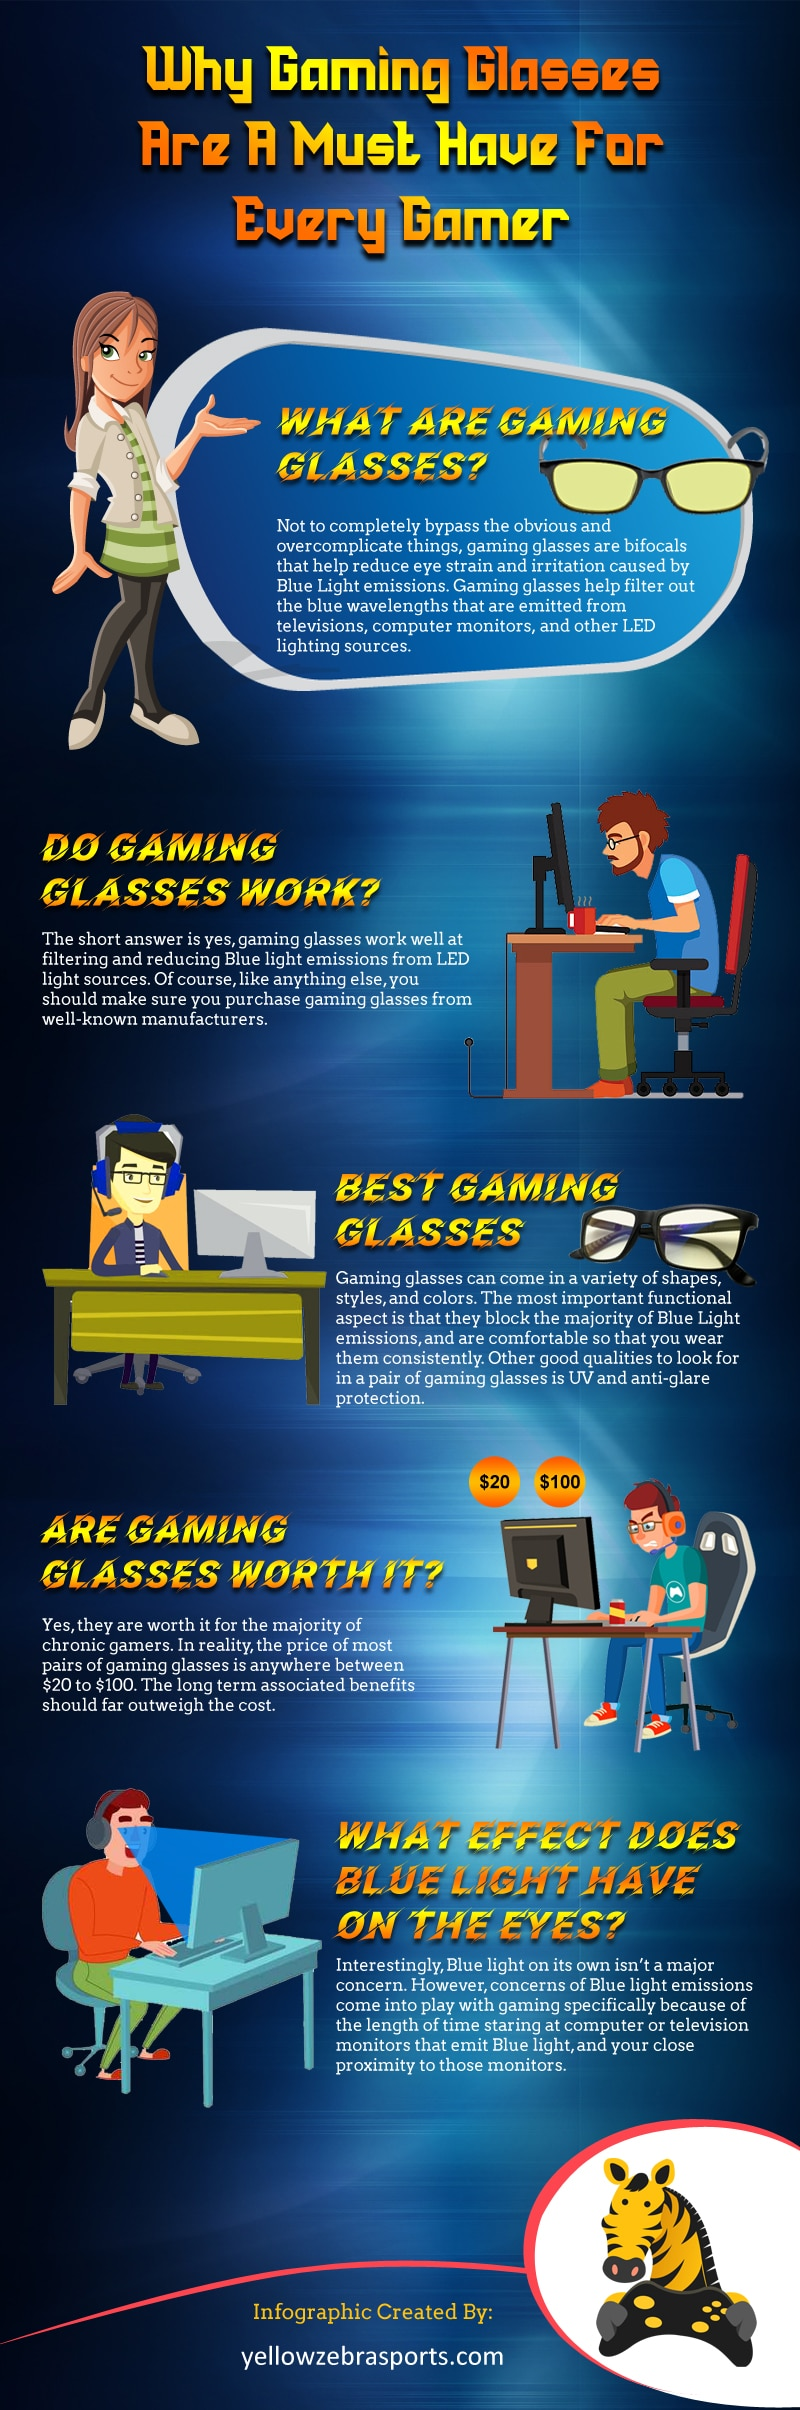 Why Gaming Glasses Are A Must Have For Every Gamer